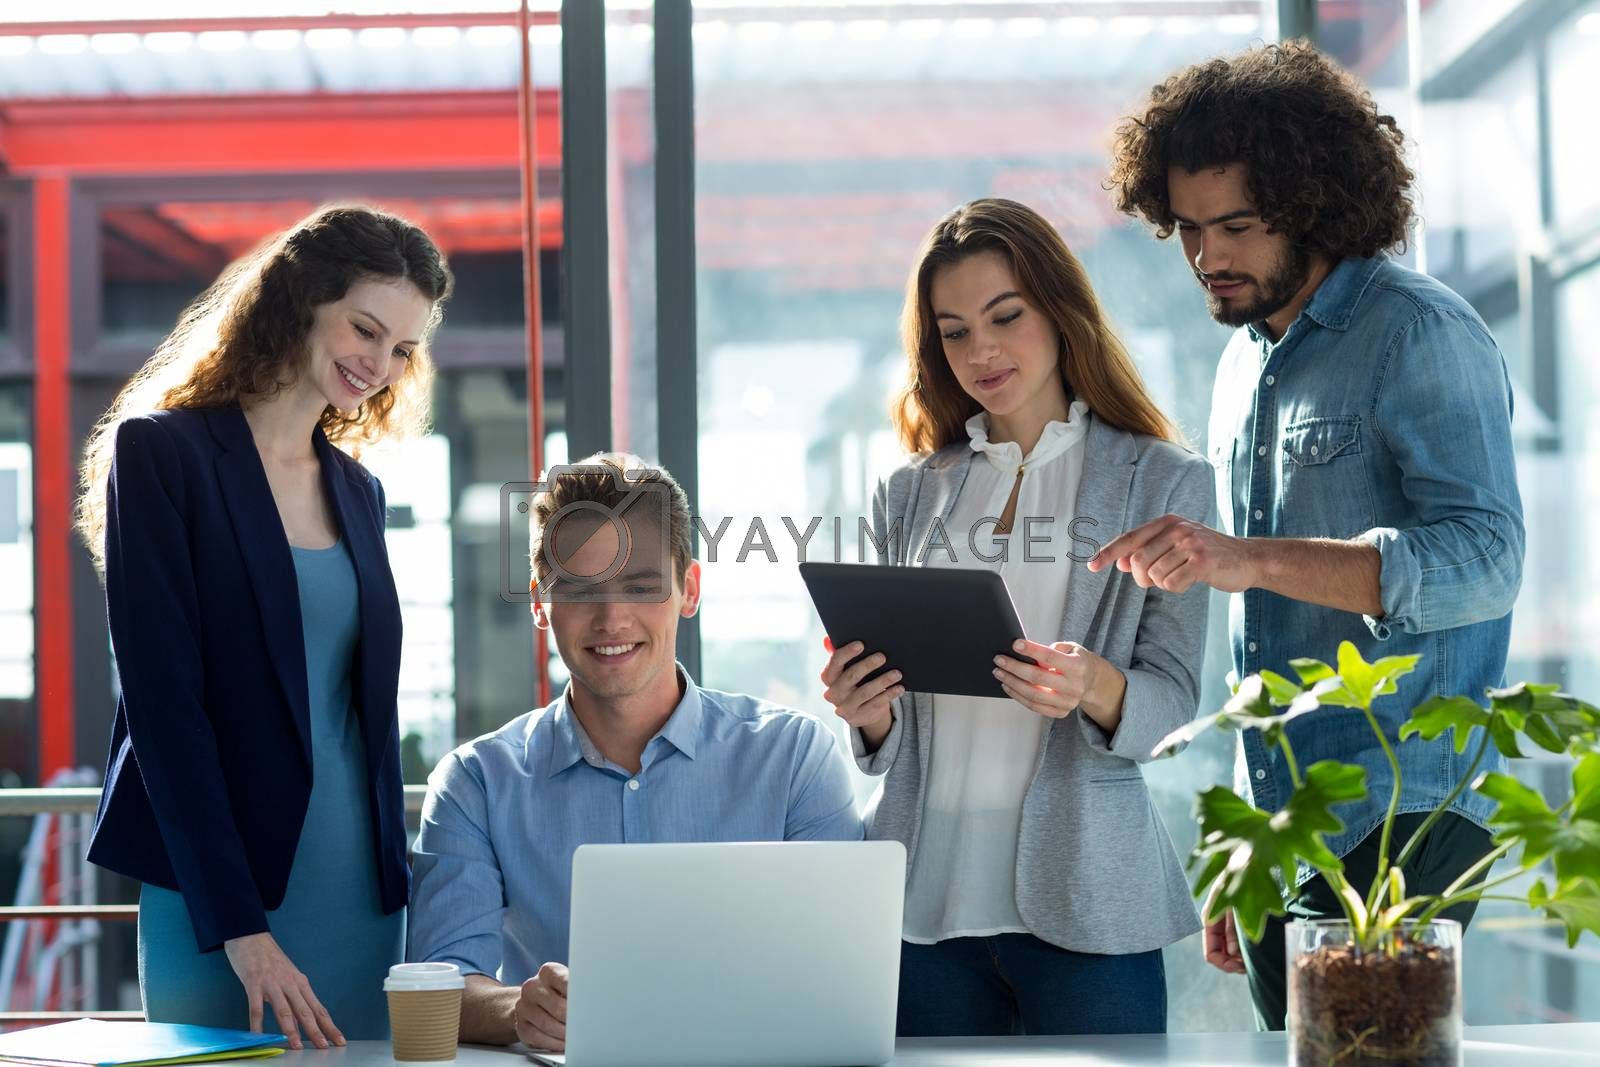 Businesspeople having discussion over laptop and digital tablet in office